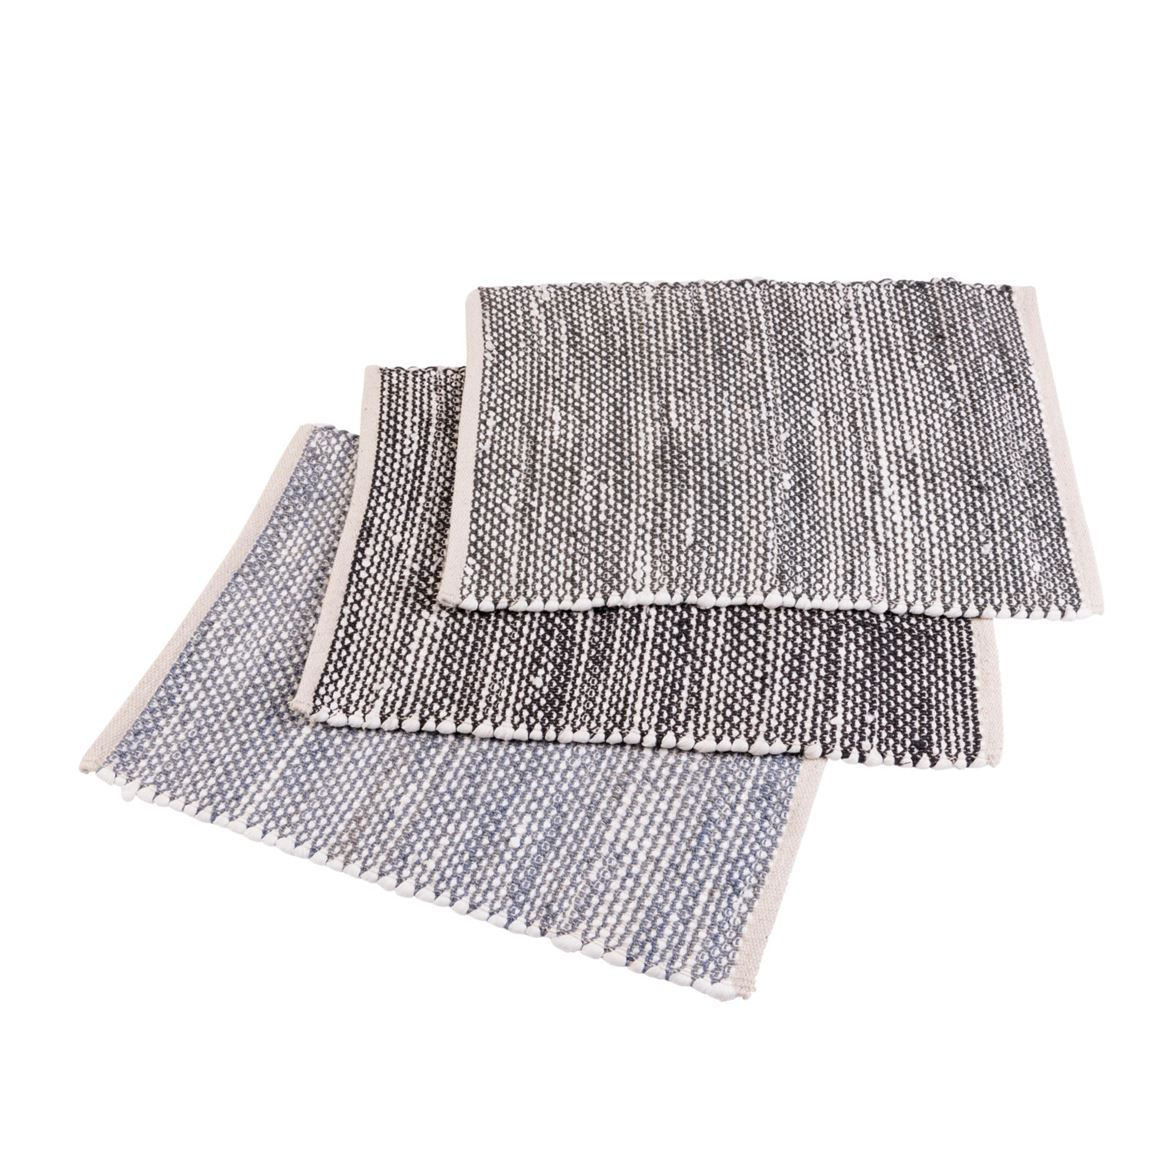 NOAH Set de table gris clair Larg. 45 x Long. 55 cm_noah-set-de-table-gris-clair-larg--45-x-long--55-cm